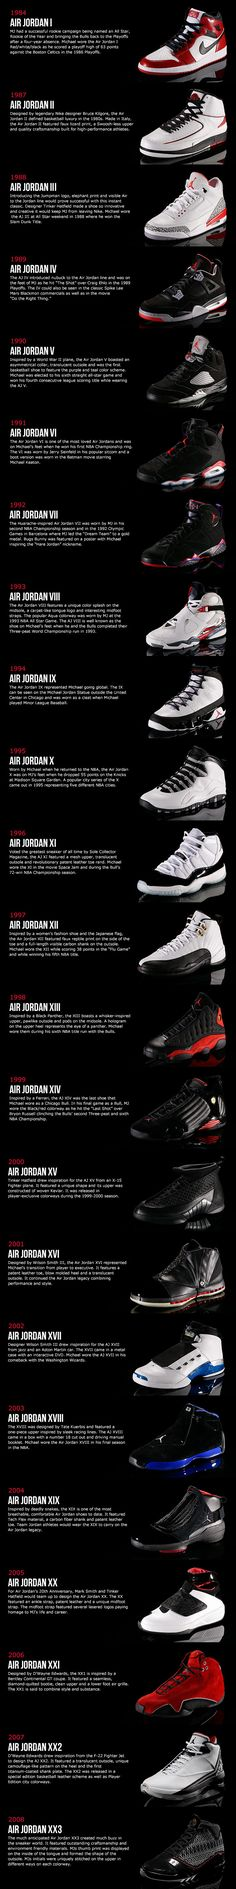 History of Air Jordan Shoes. Air Jordan is a brand of basketball footwear and athletic clothing produced by Nike and endorsed and created for Chicago Bulls basketball player Michael Jordan Aegis Gears Jordans Retro, Nike Air Jordans, Jordans Sneakers, Shoes Sneakers, Shoes Men, Jordans Outfit For Men, All Jordans, White Jordans, Sneakers Adidas